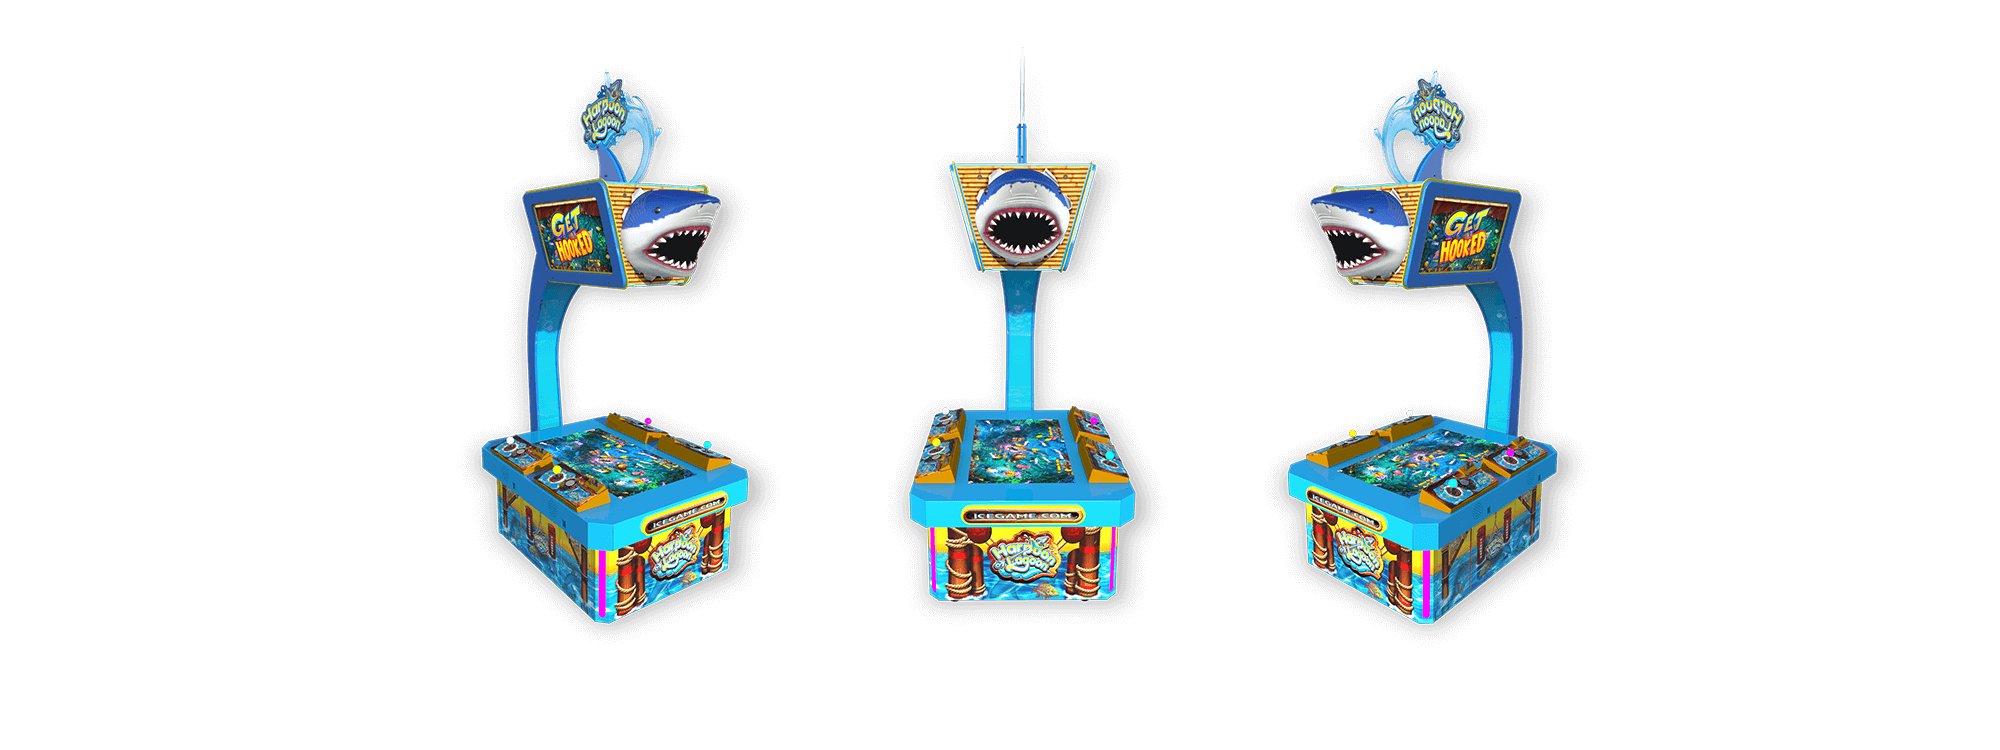 Harpoon Lagoon Arcade Game OEM Parts, Service & Game Manuals